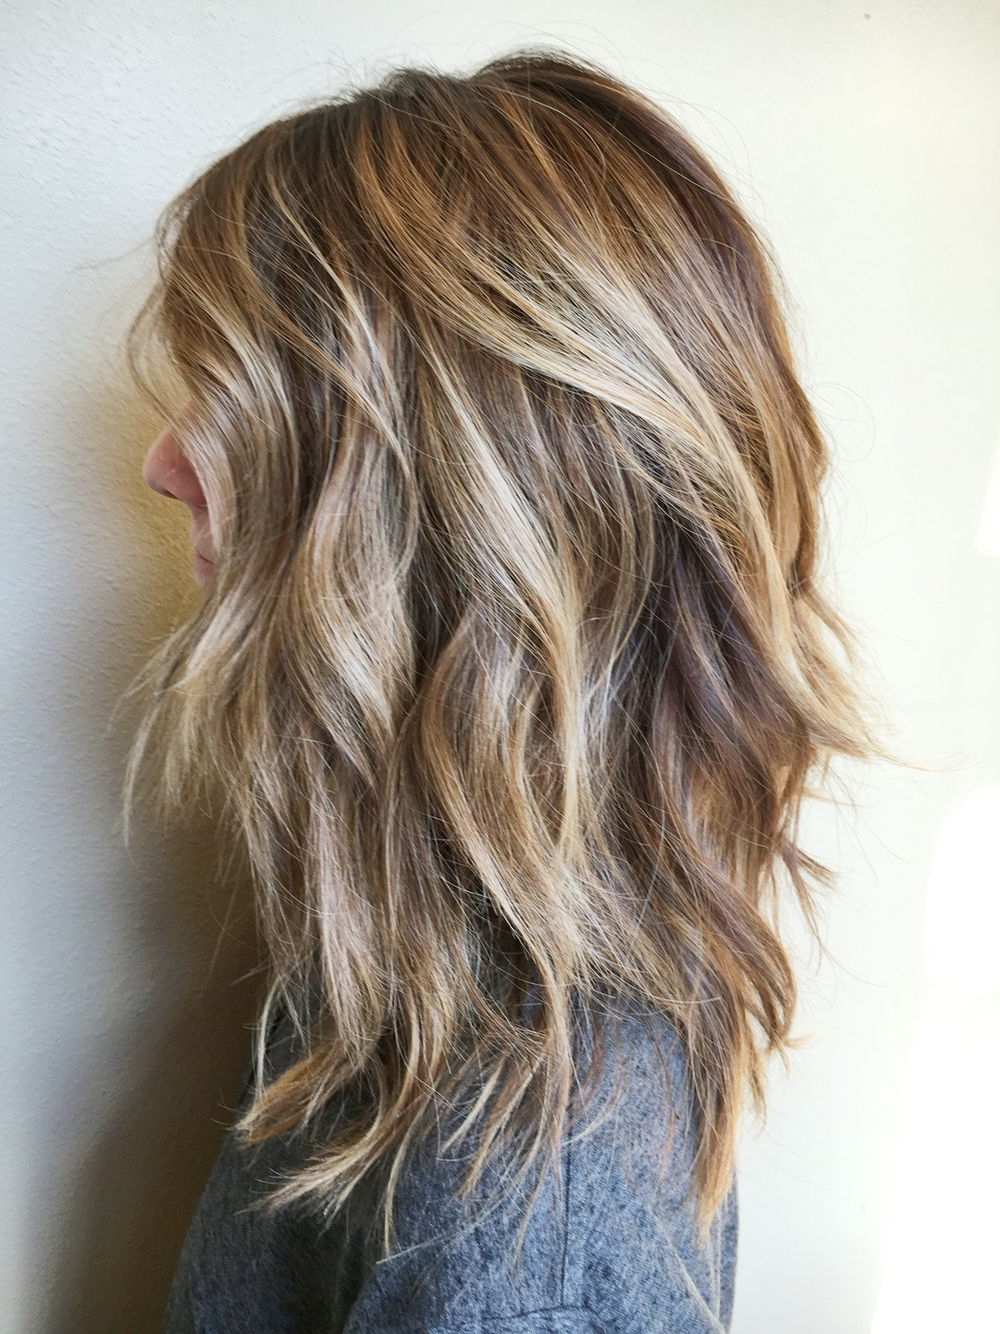 40 Amazing Medium Length Hairstyles & Shoulder Length Haircuts Within Fashionable Medium Hairstyles With Lots Of Layers (View 10 of 20)